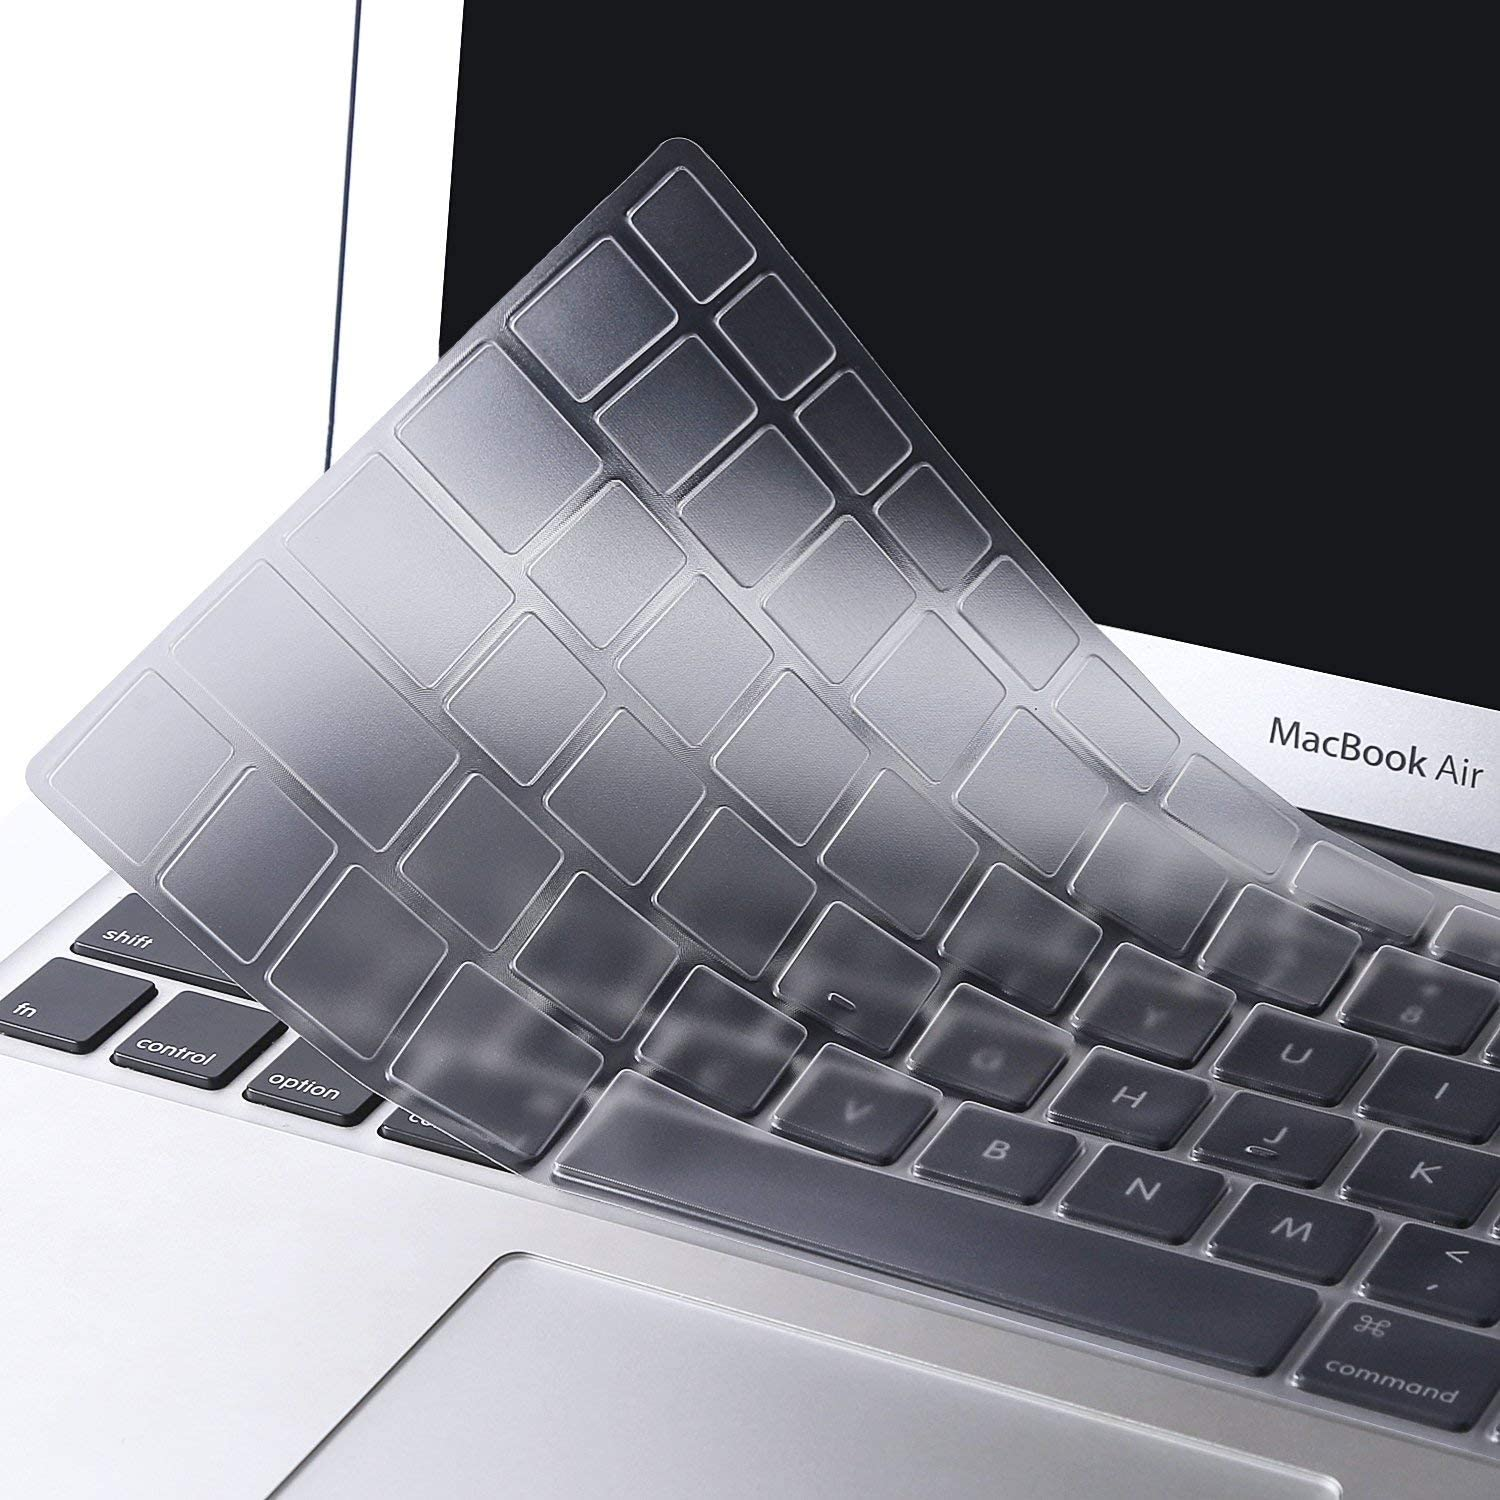 MOSISO Protective Keyboard Cover Skin Compatible with MacBook Air 11 inch (Models: A1370 & A1465), Clear